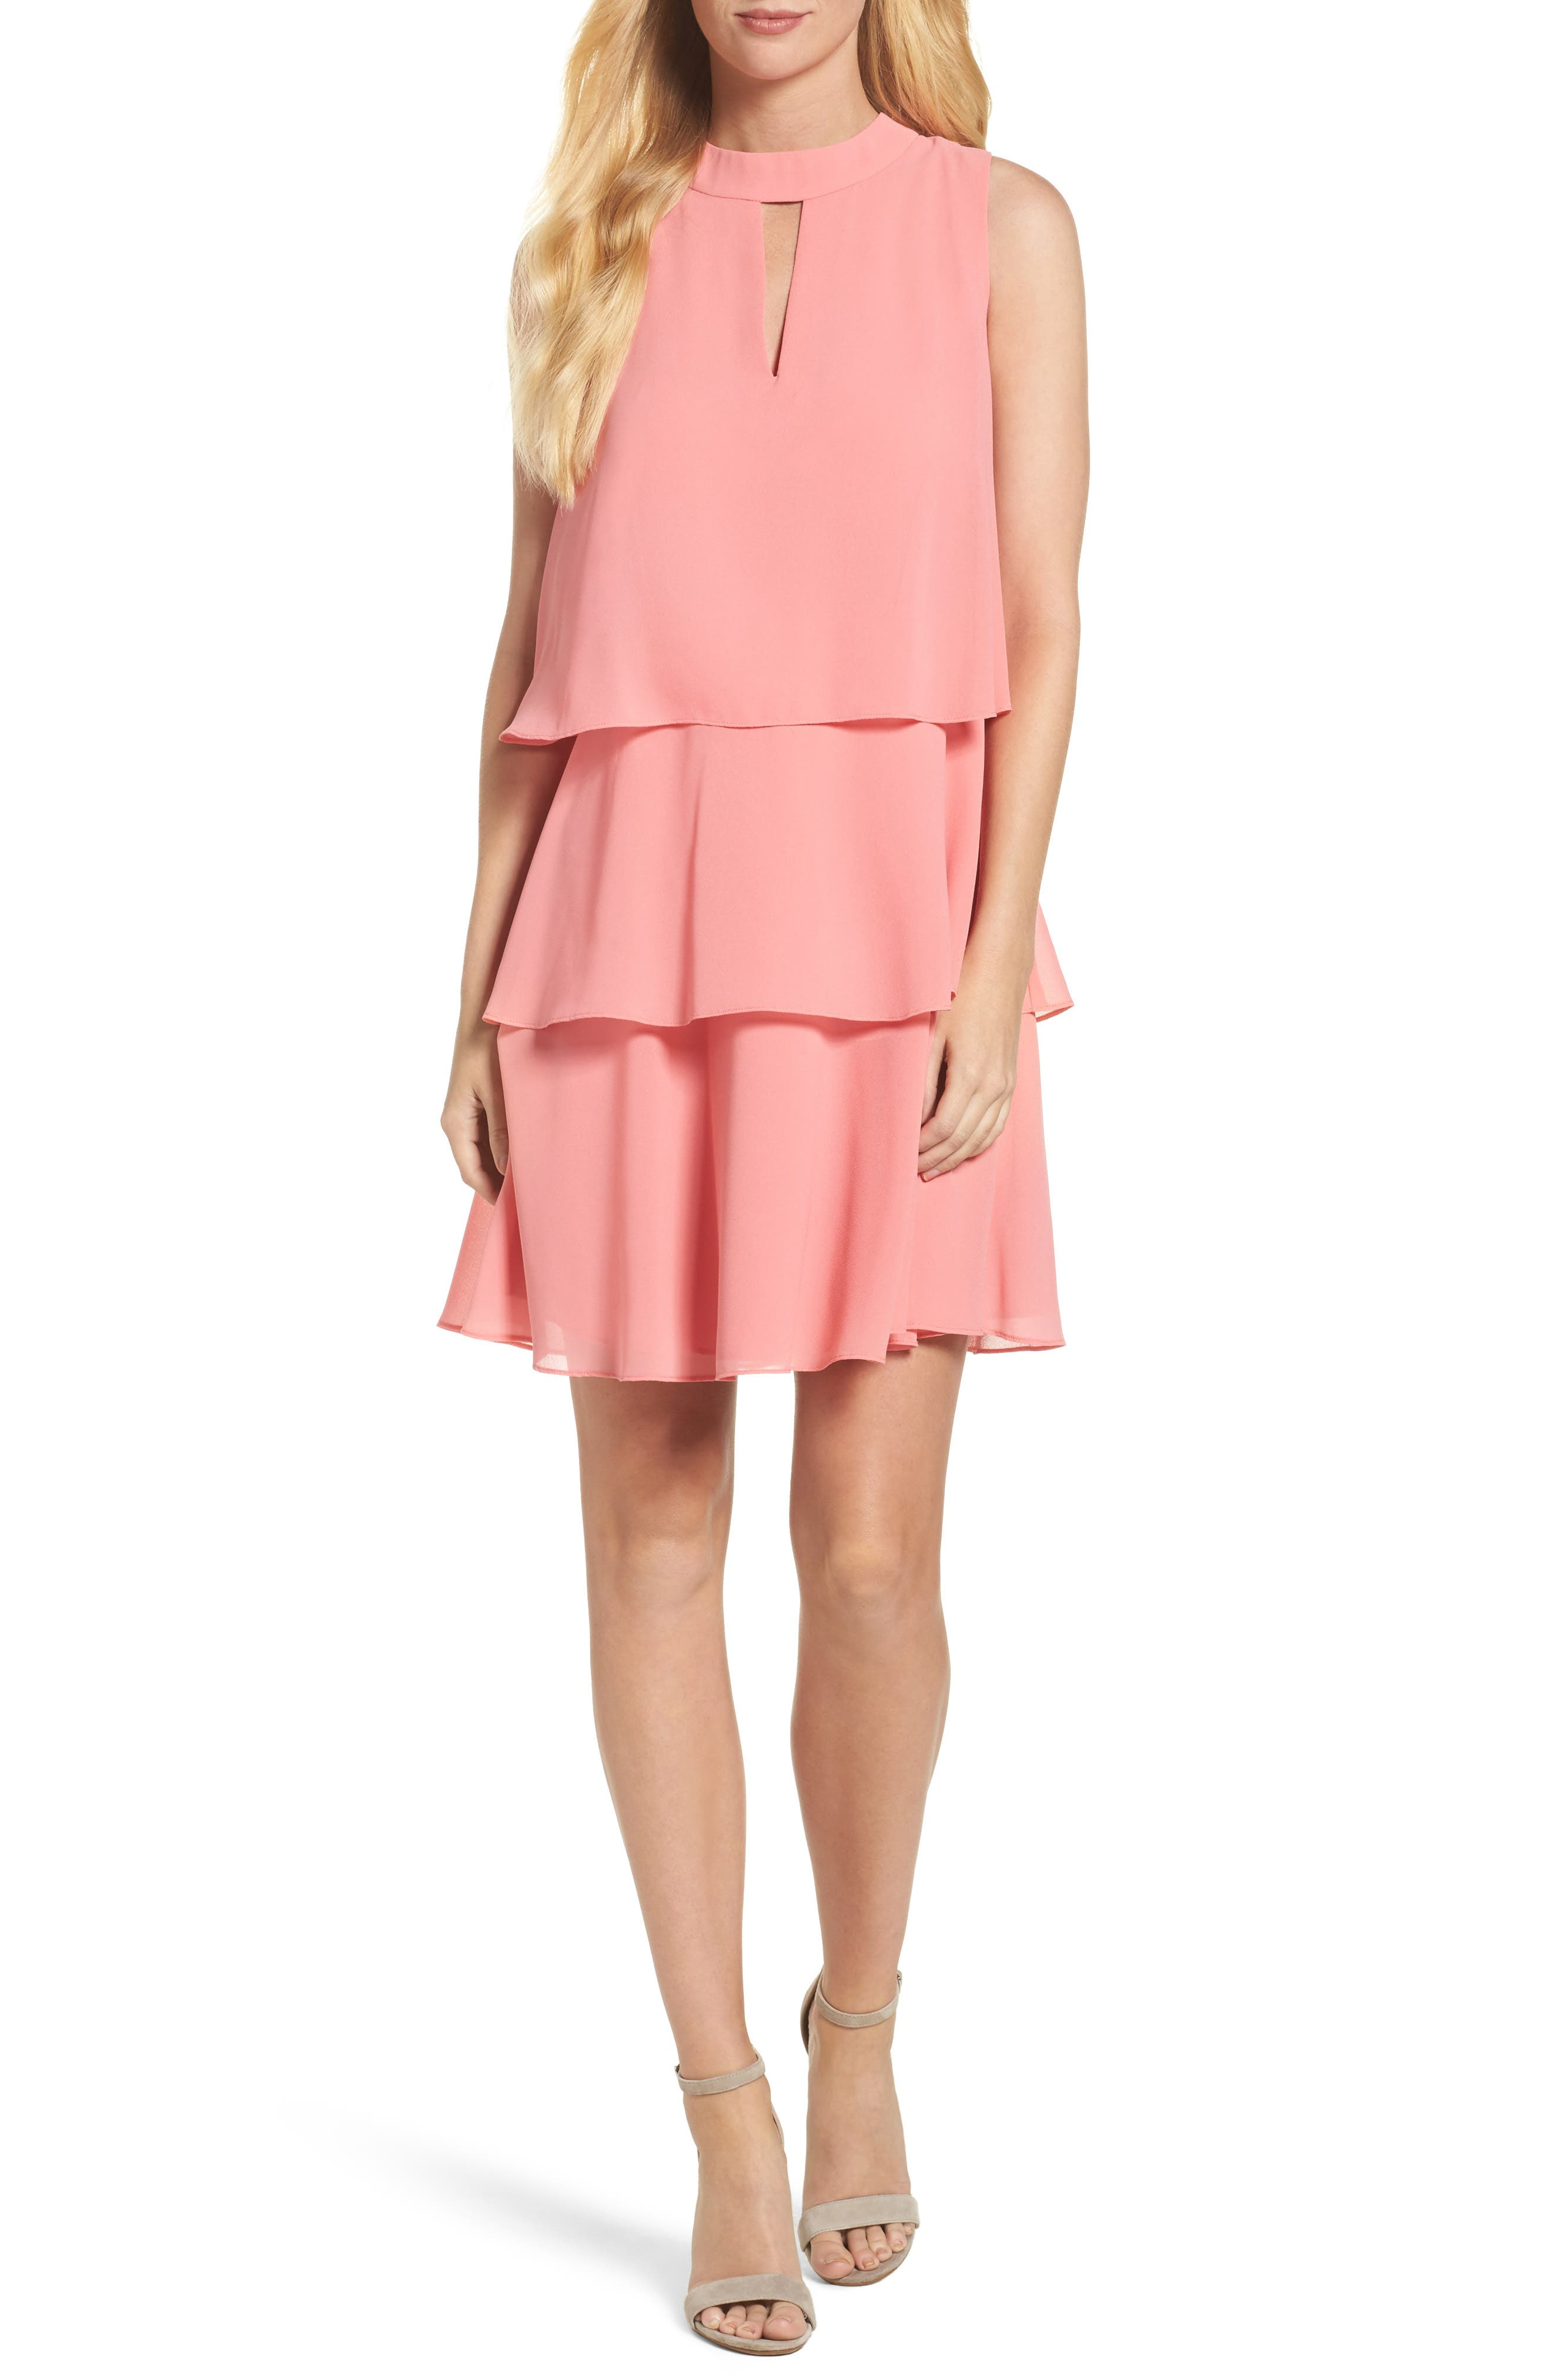 Alternate Image 1 Selected - Vince Camuto Tiered Chiffon Dress